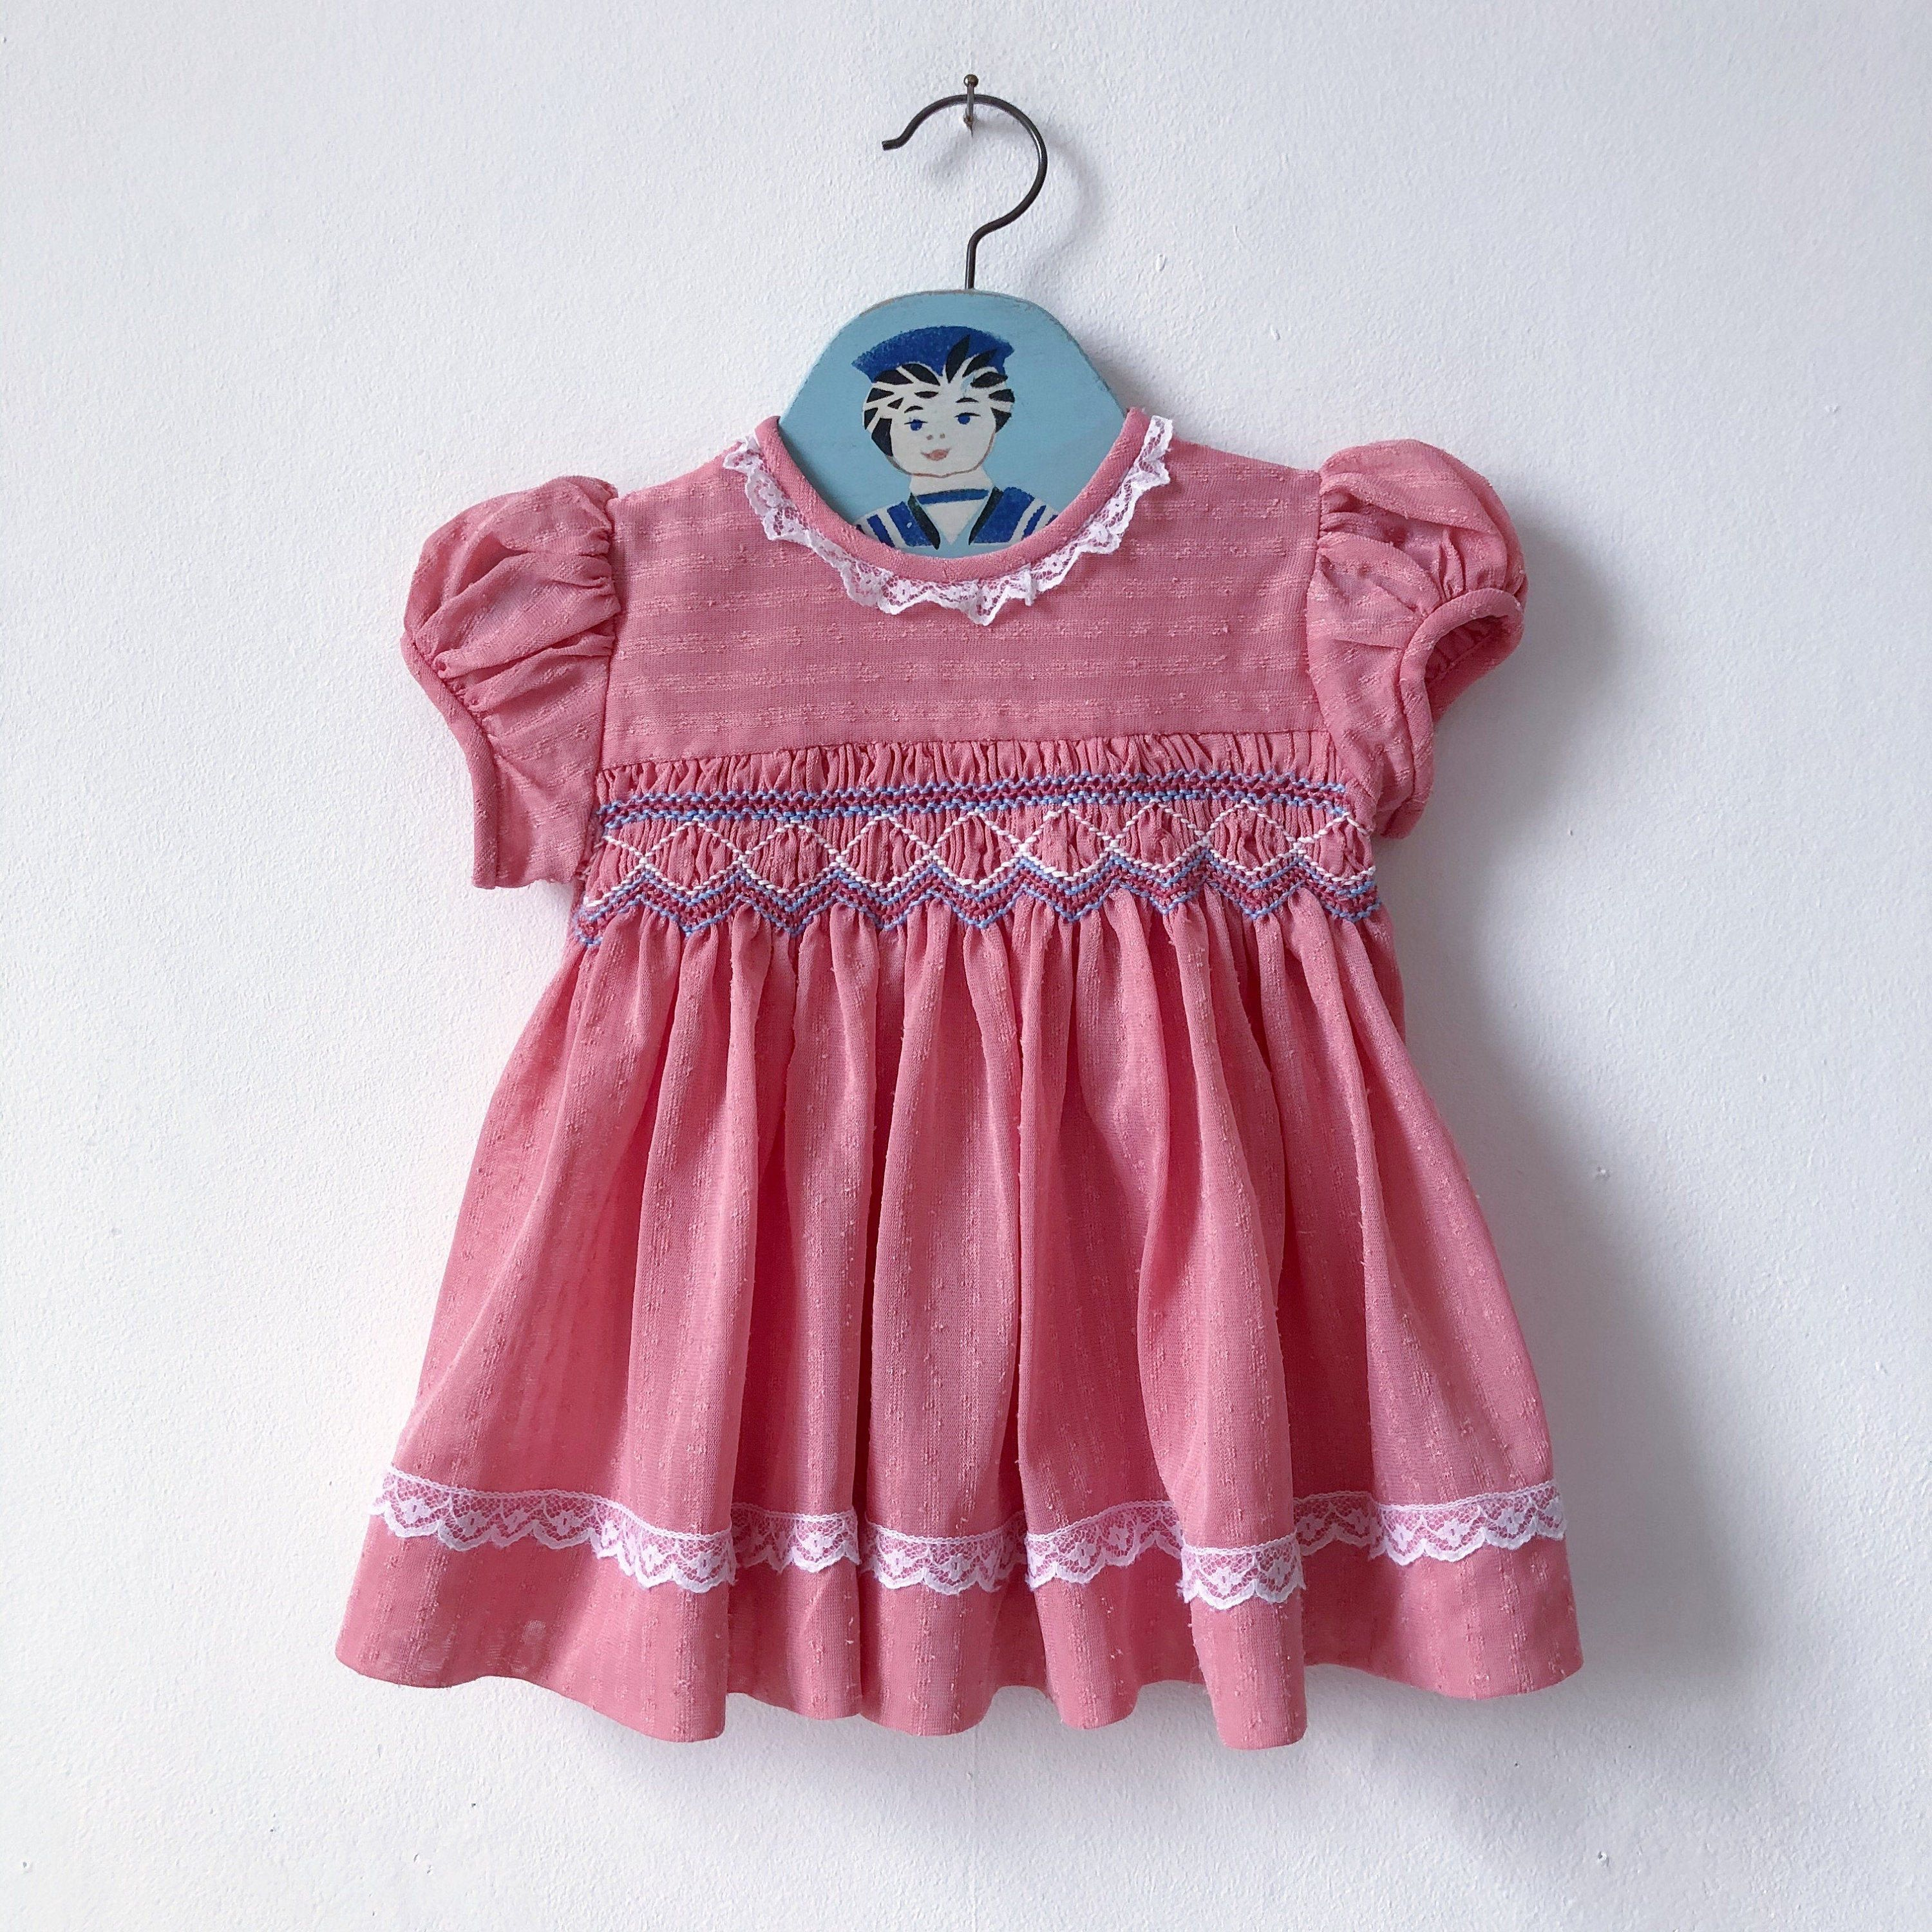 SIZE 12-18 Month 1950s Red Gingham Girls Dress  Vintage Embroidered Peter Pan Collar Little Girls Dress  Baby Girl Casual Dress